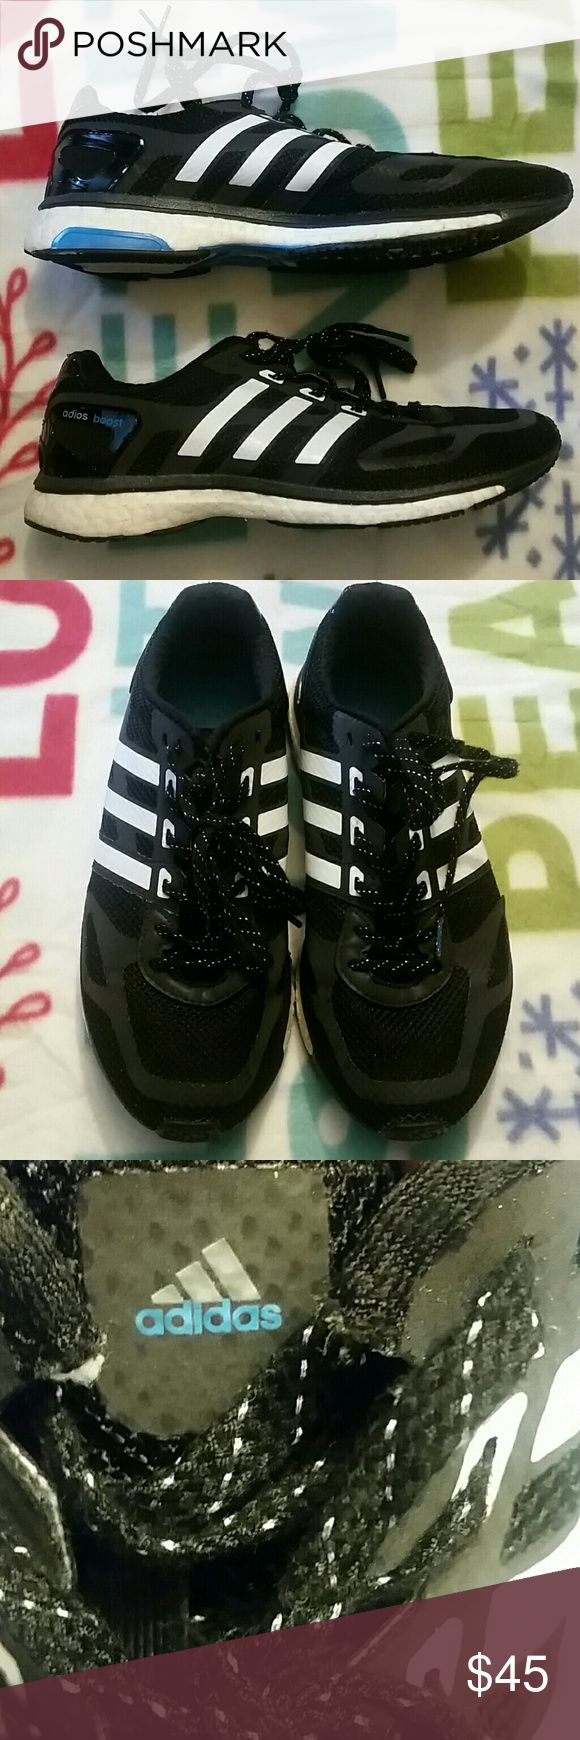 Womens Adidas Adios Boost Sneakers Good condition running/training sneakers from Adidas.Torsion system sneakers. A good buy for the price. adidas Shoes Athletic Shoes